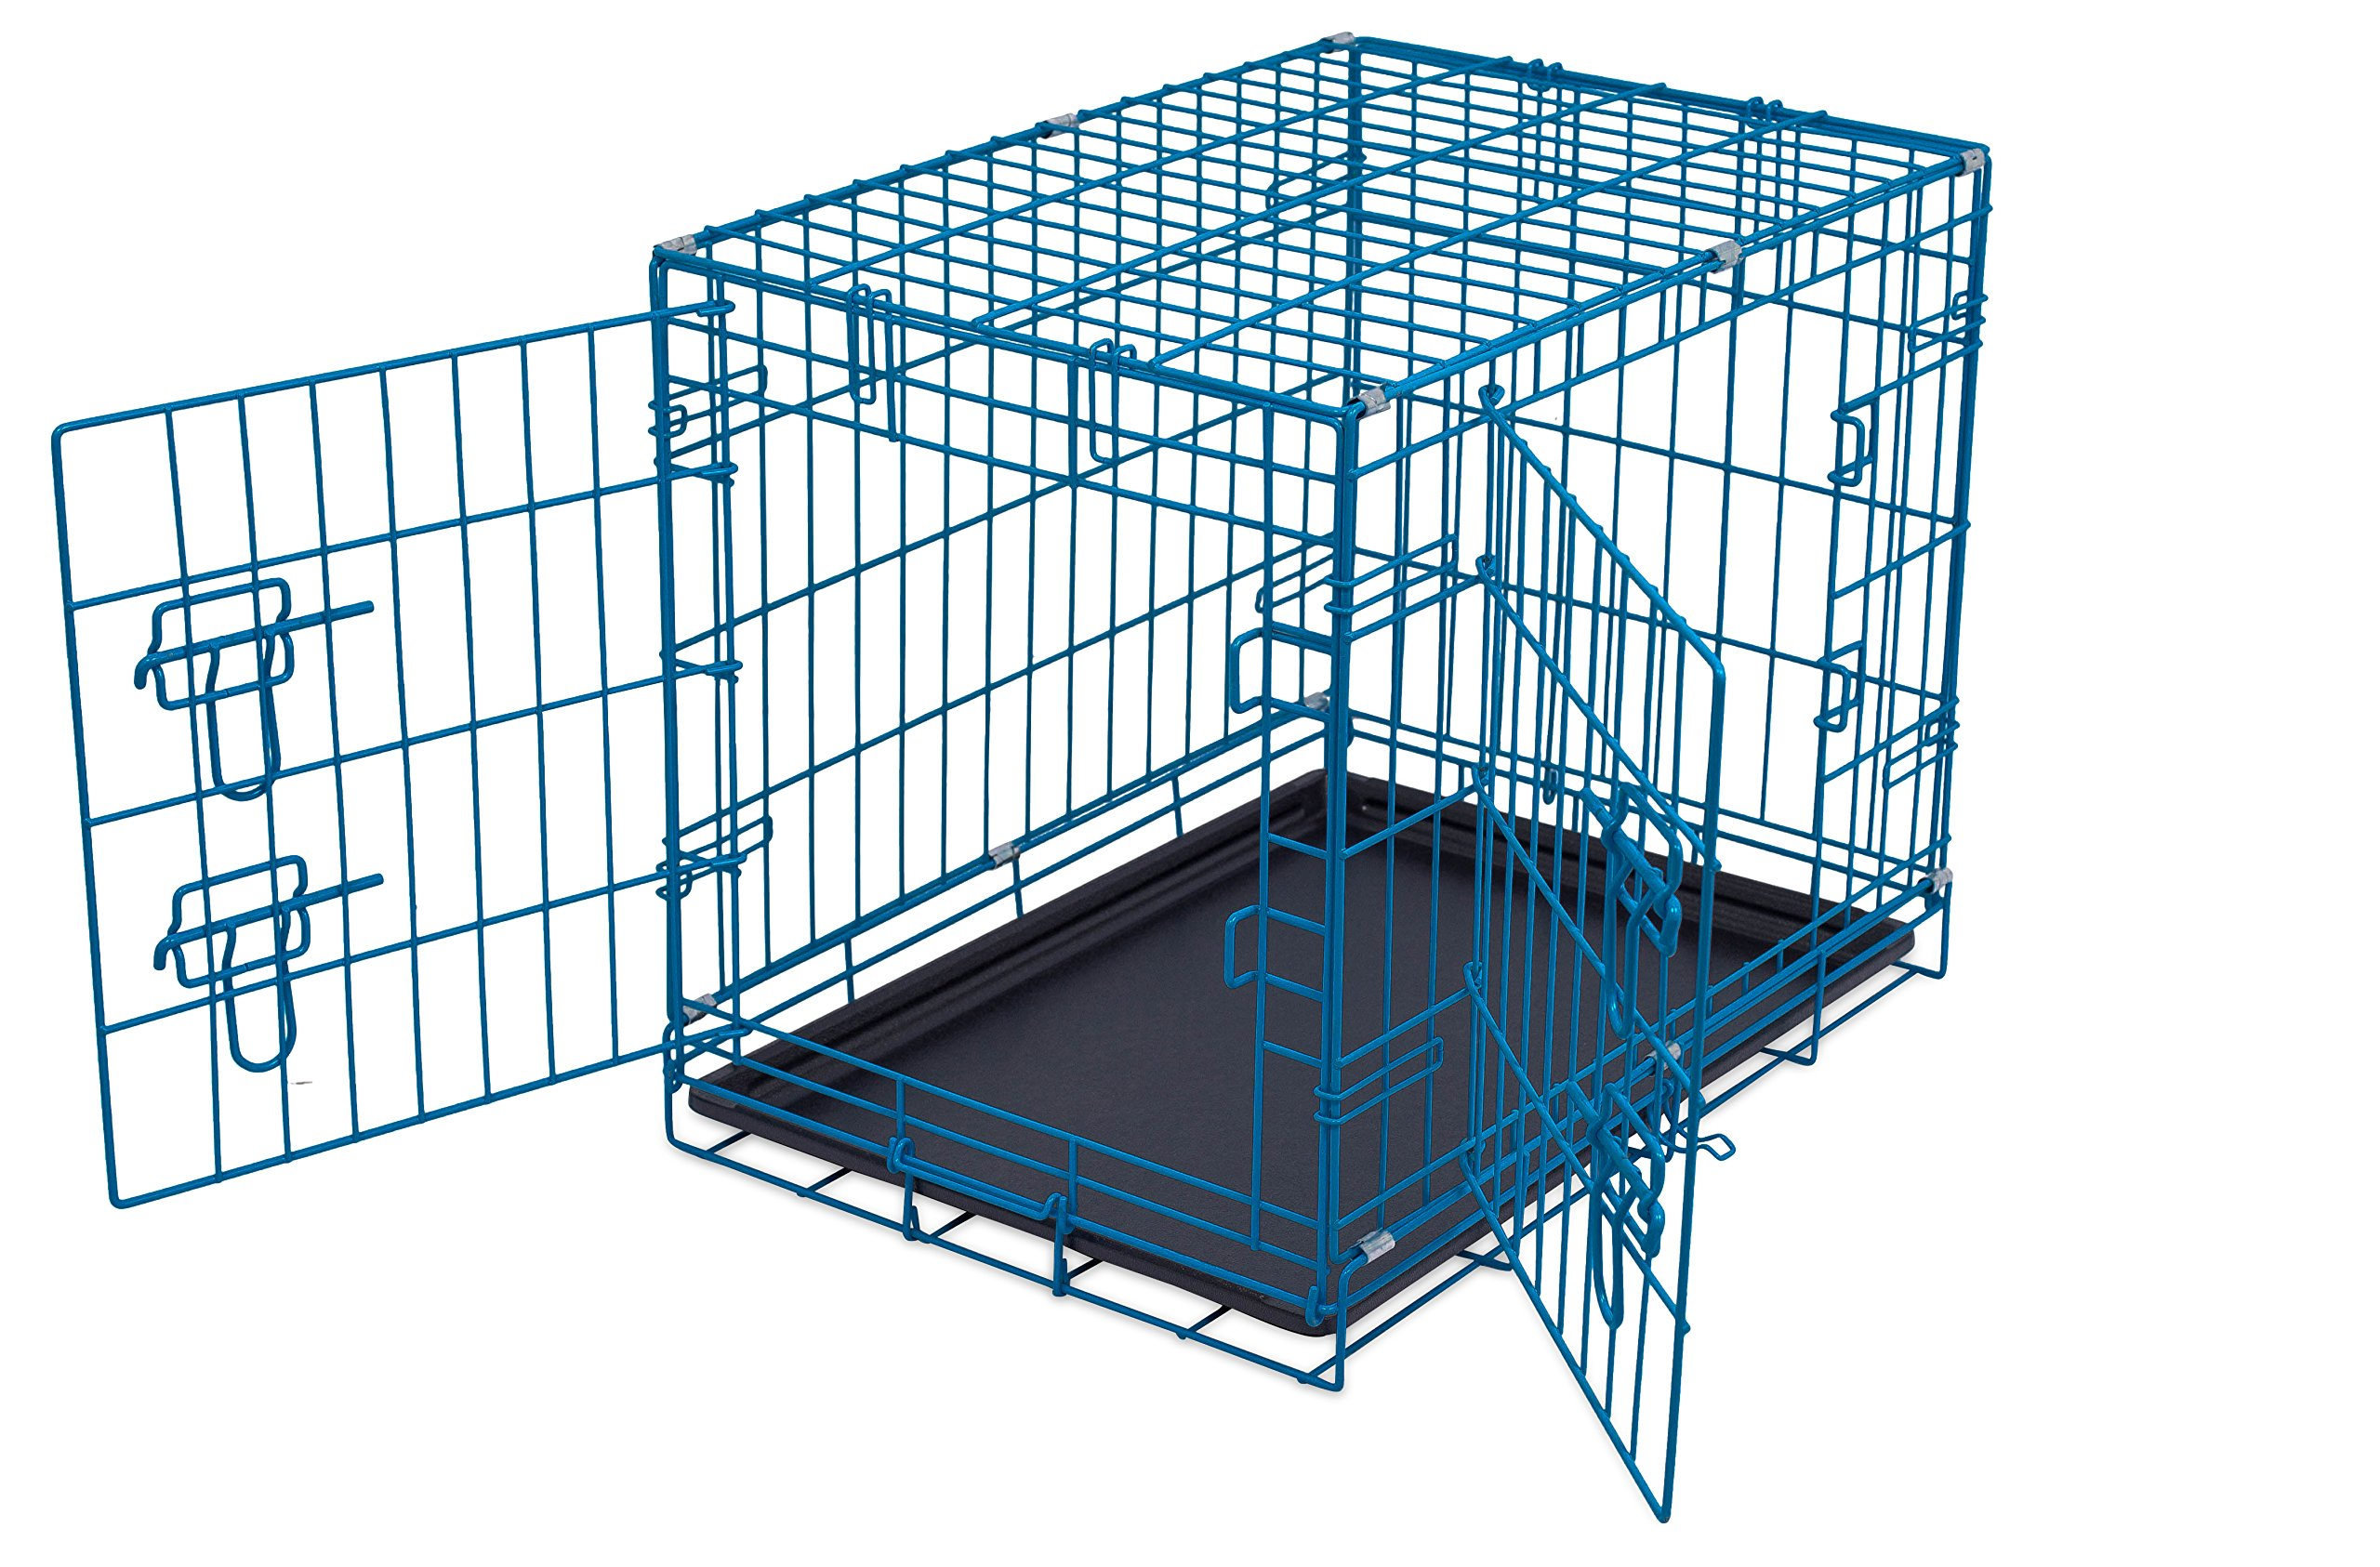 Internet's Best Double Door Steel Crates Collapsible and Foldable Wire Dog Kennel, 24 Inch (Small), Blue by Internet's Best (Image #2)